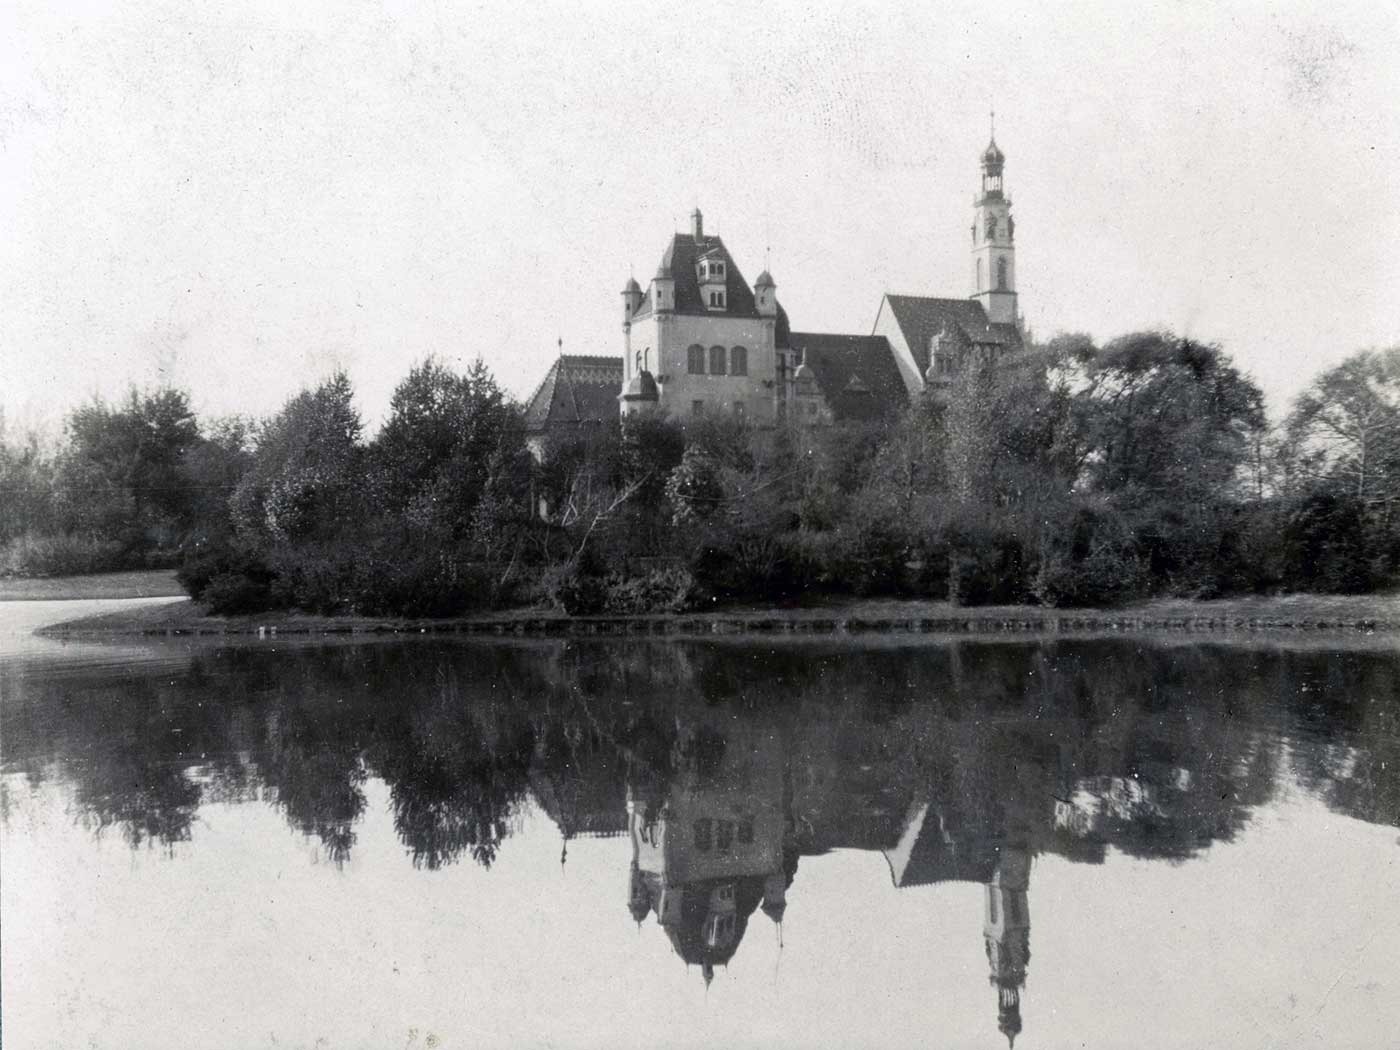 Jackson Park German Building, Series II, University of Chicago, Special Collections Research Center, apf2-04510, 1904.